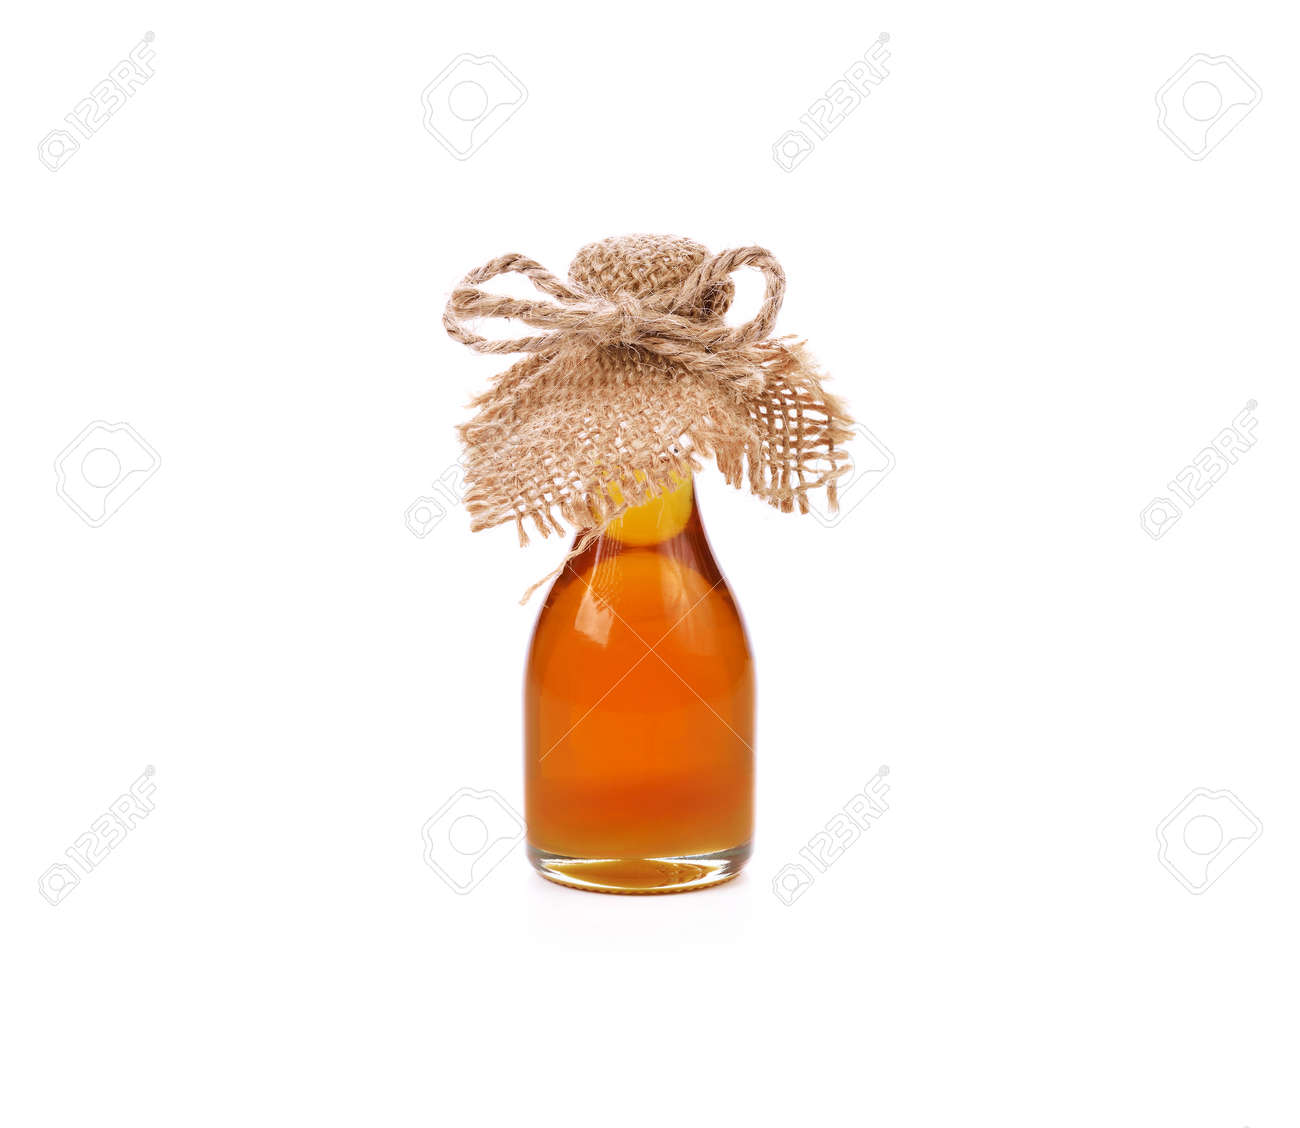 Honey and wooden dipper isolated on white background - 169847847